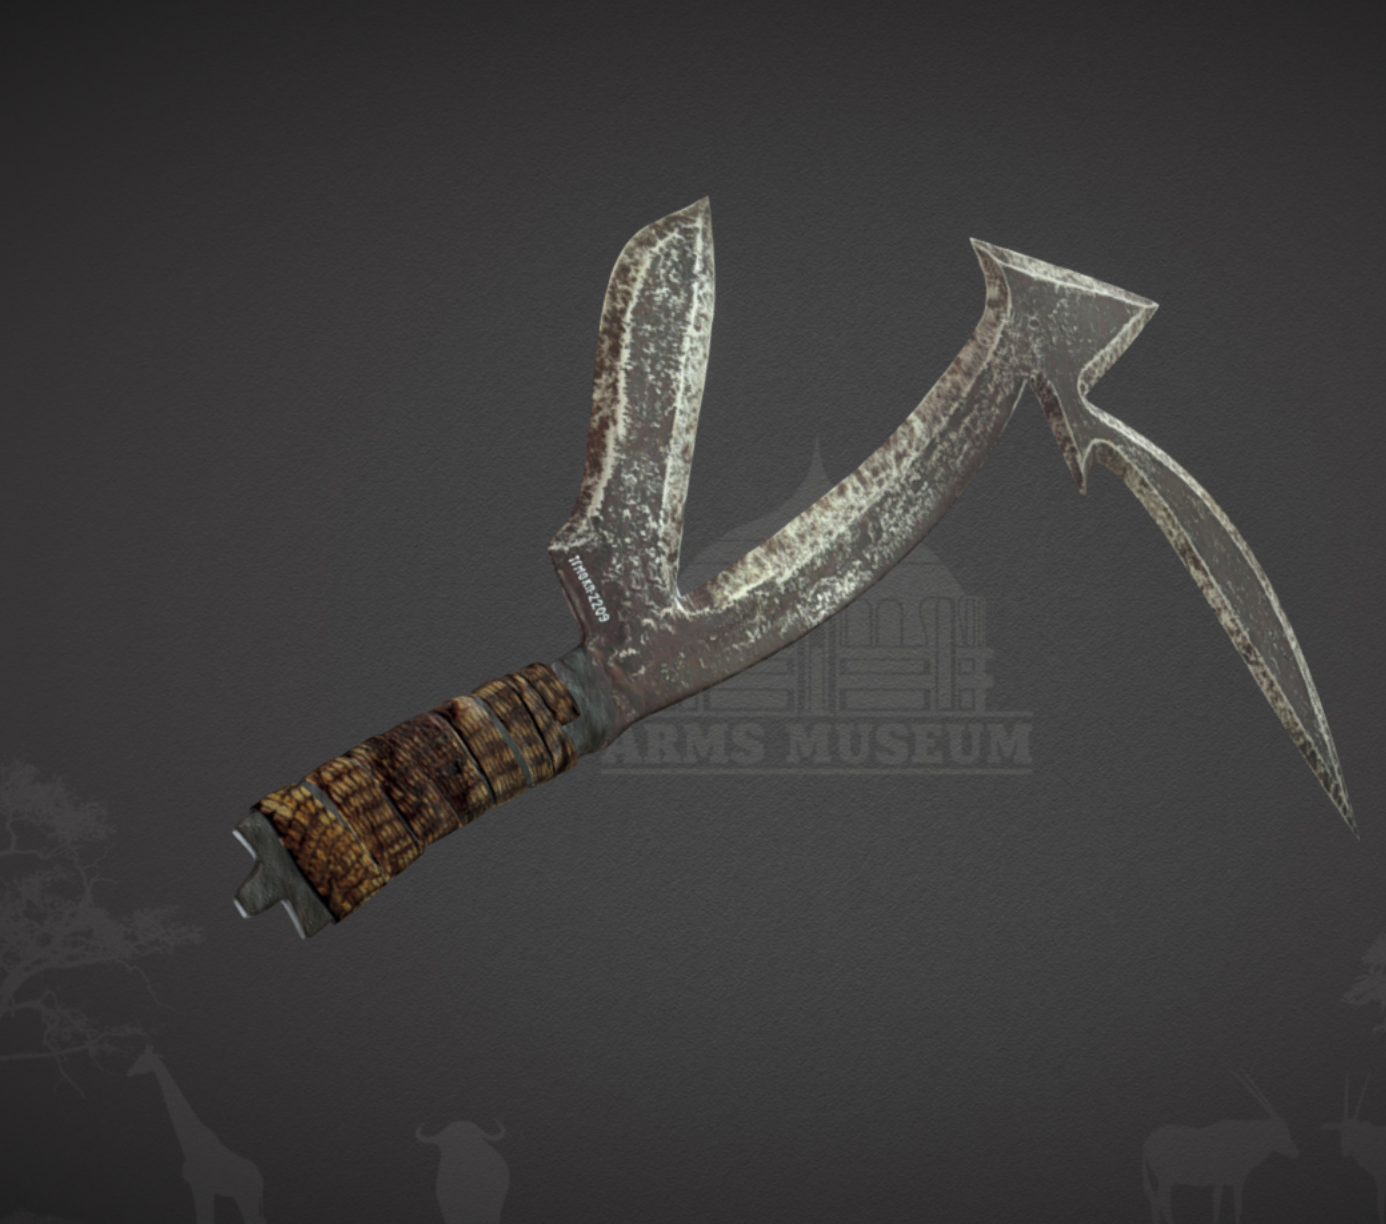 Capture d'écran 2017-11-24 à 17.16.56.png Download free OBJ file Pinga Throwing Knife • 3D printing model, ArmsMuseum